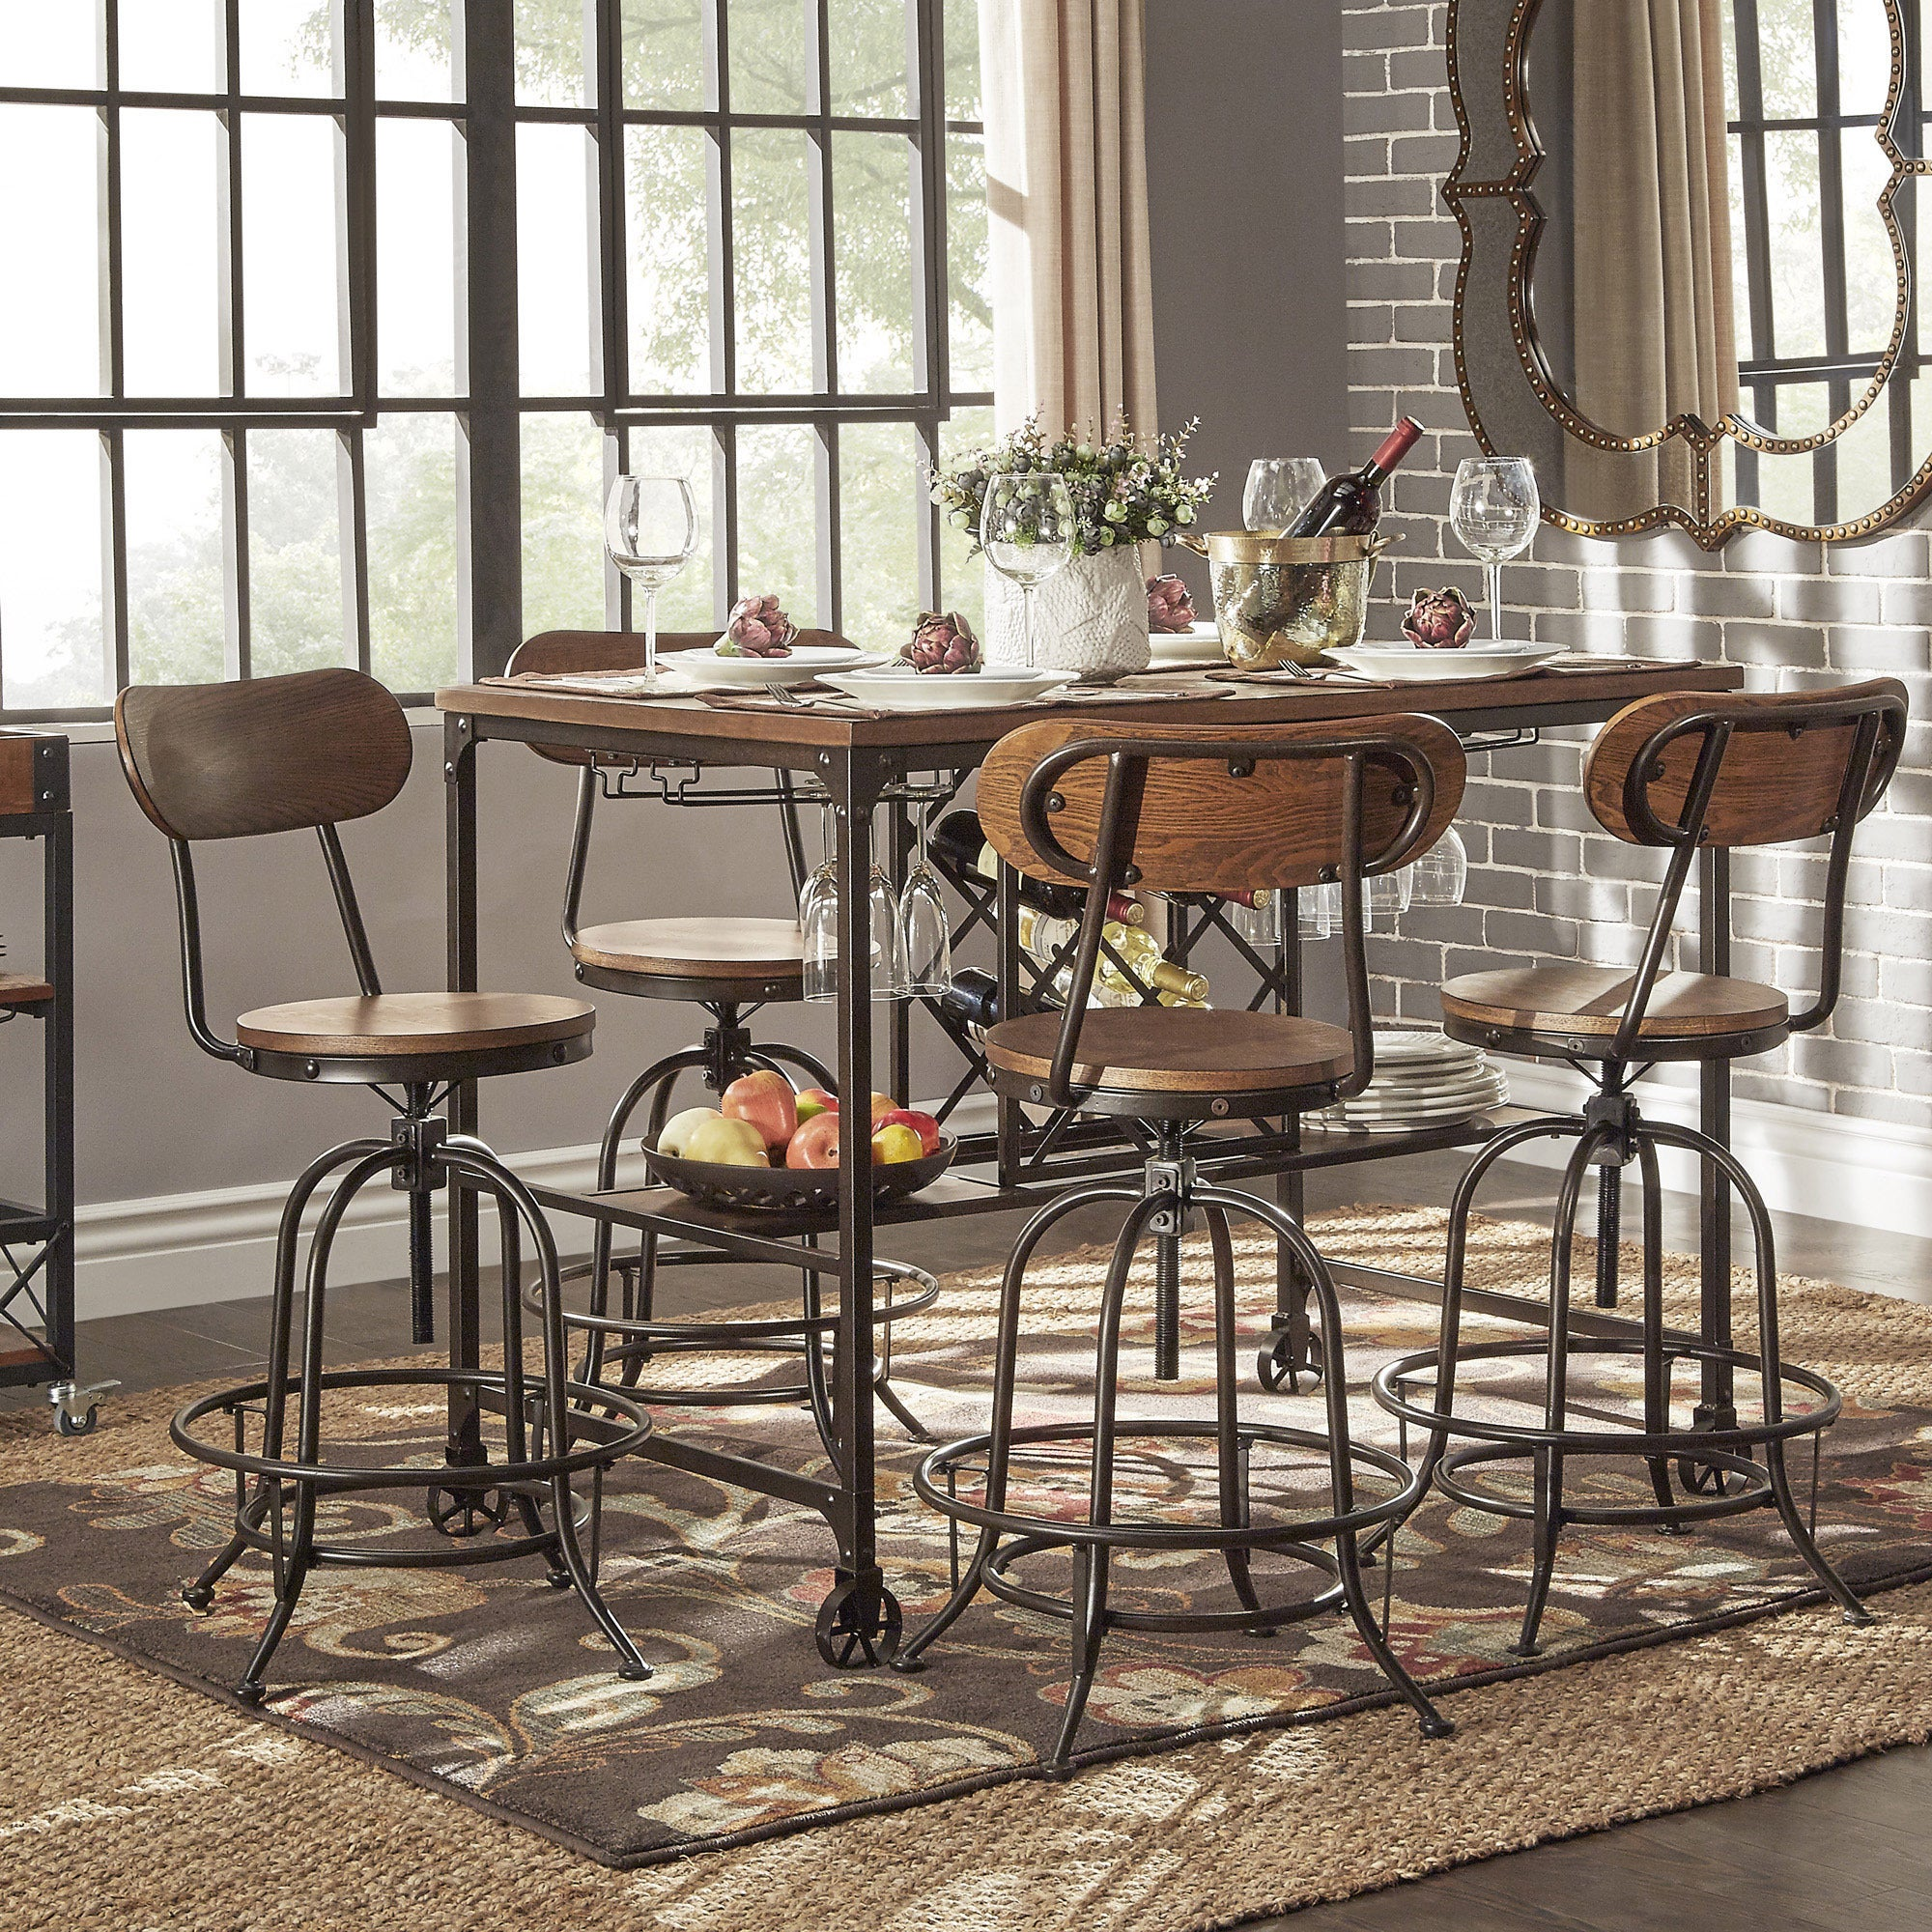 Berwick Industrial Style Counter Height Pub Dining Set With Wine Rack By  INSPIRE Q Classic   Free Shipping Today   Overstock   18016298